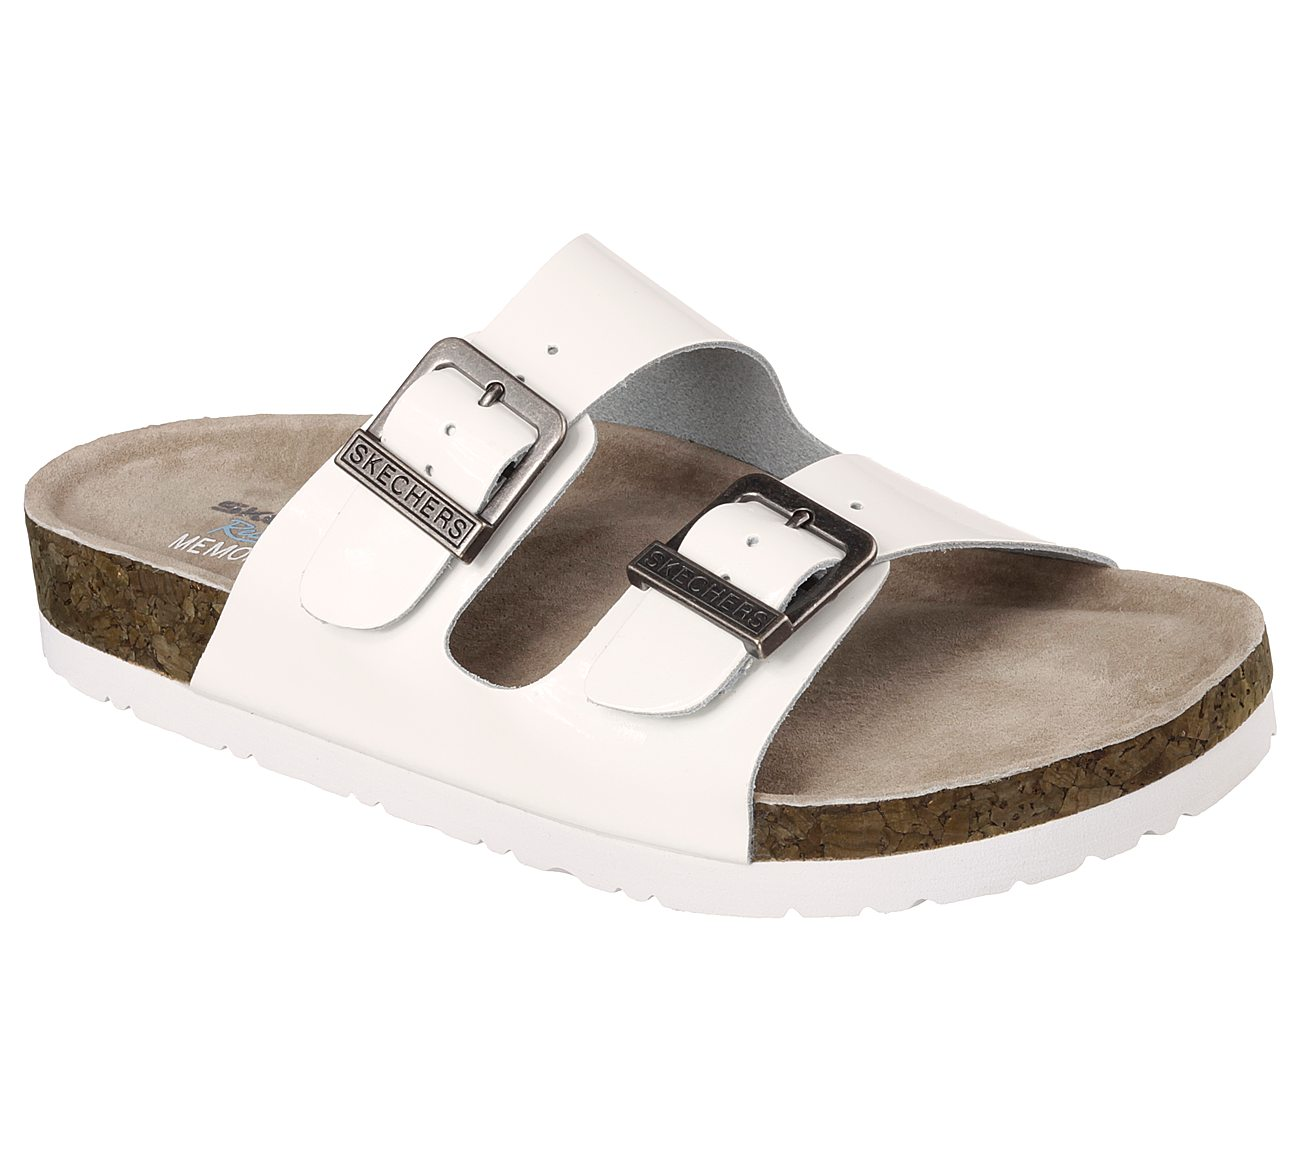 skechers relaxed fit granola sandals